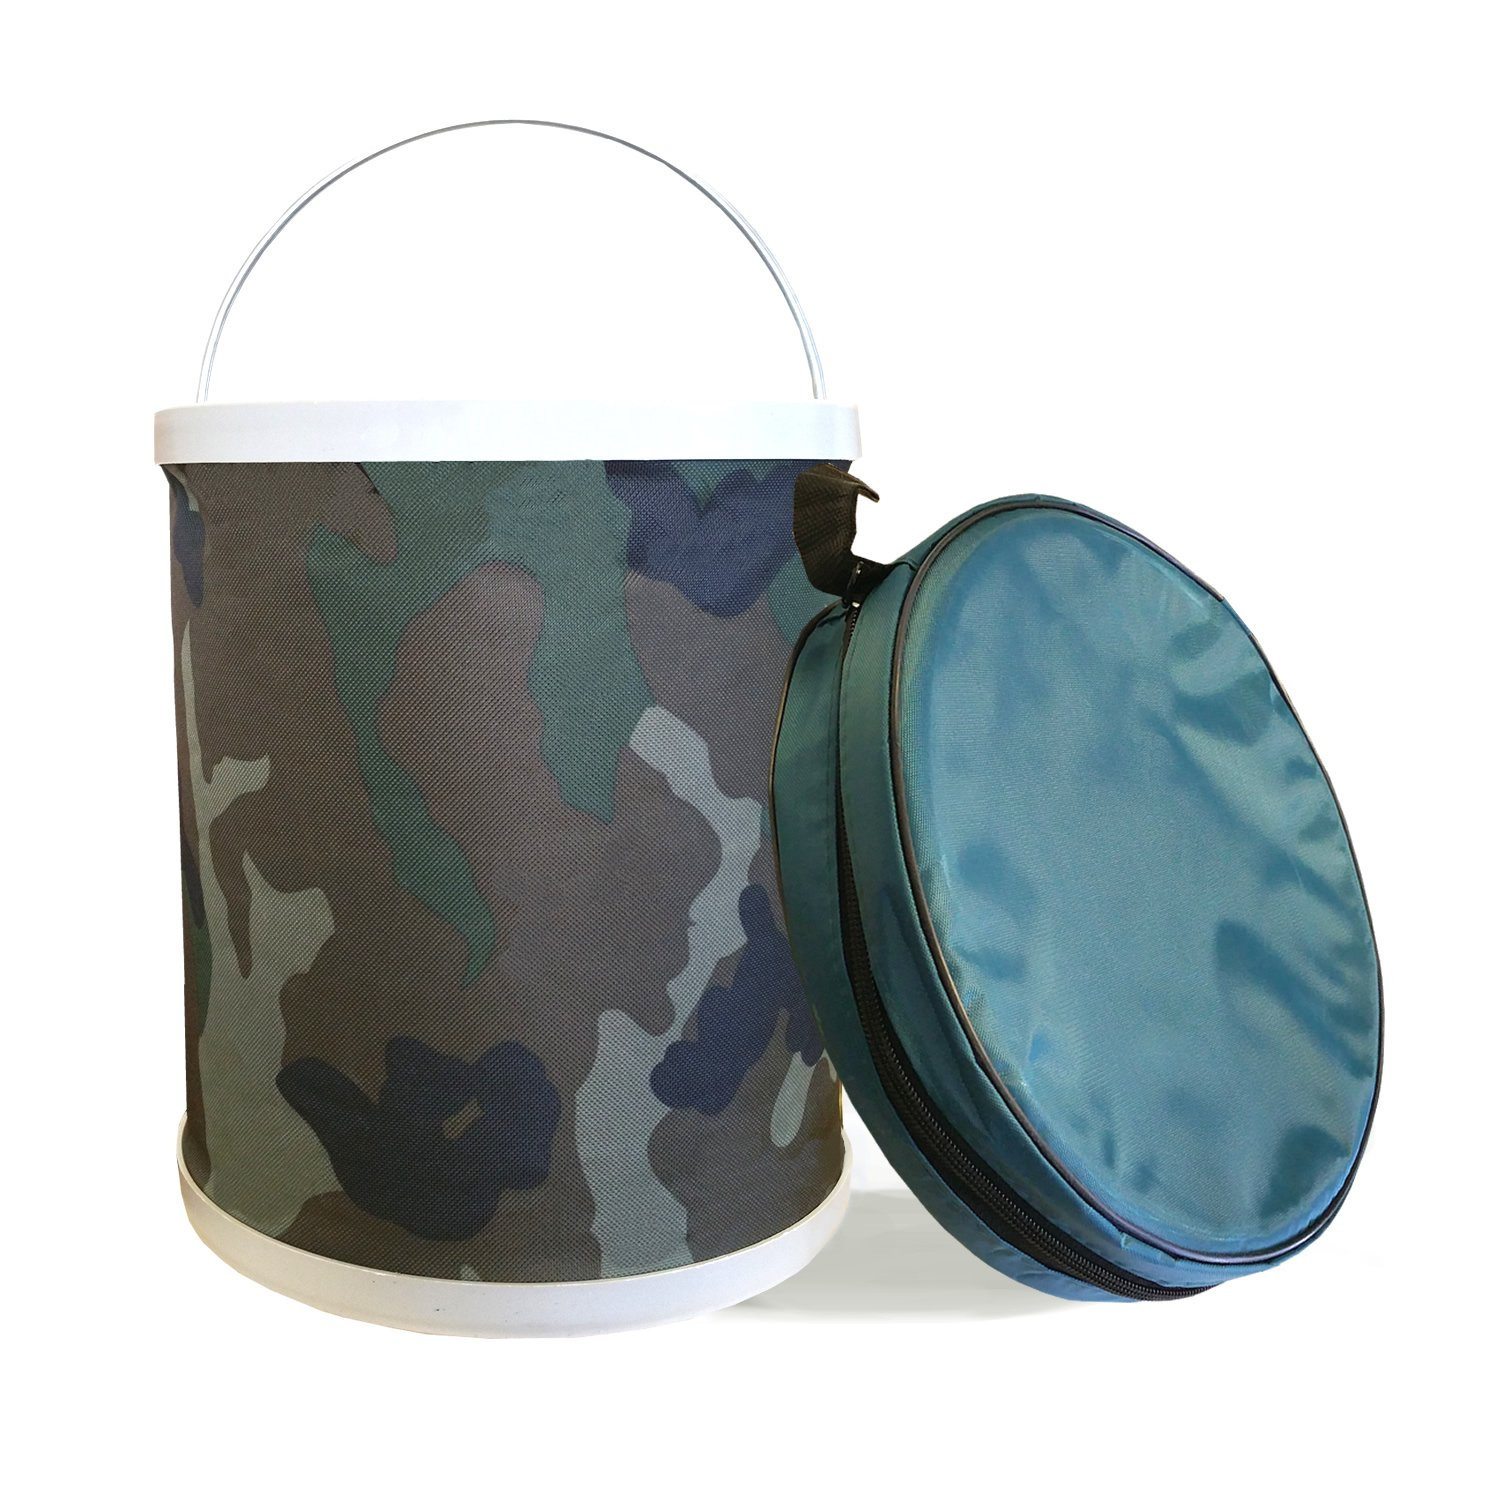 Compact Collapsible Water Bucket by InSassy – Perfect for Camping, Gardening and Outdoors – Durable, Lightweight and Portable Folding Wash Basin Storage Fishing Beach Container – Camo Color by InSassy (Image #1)